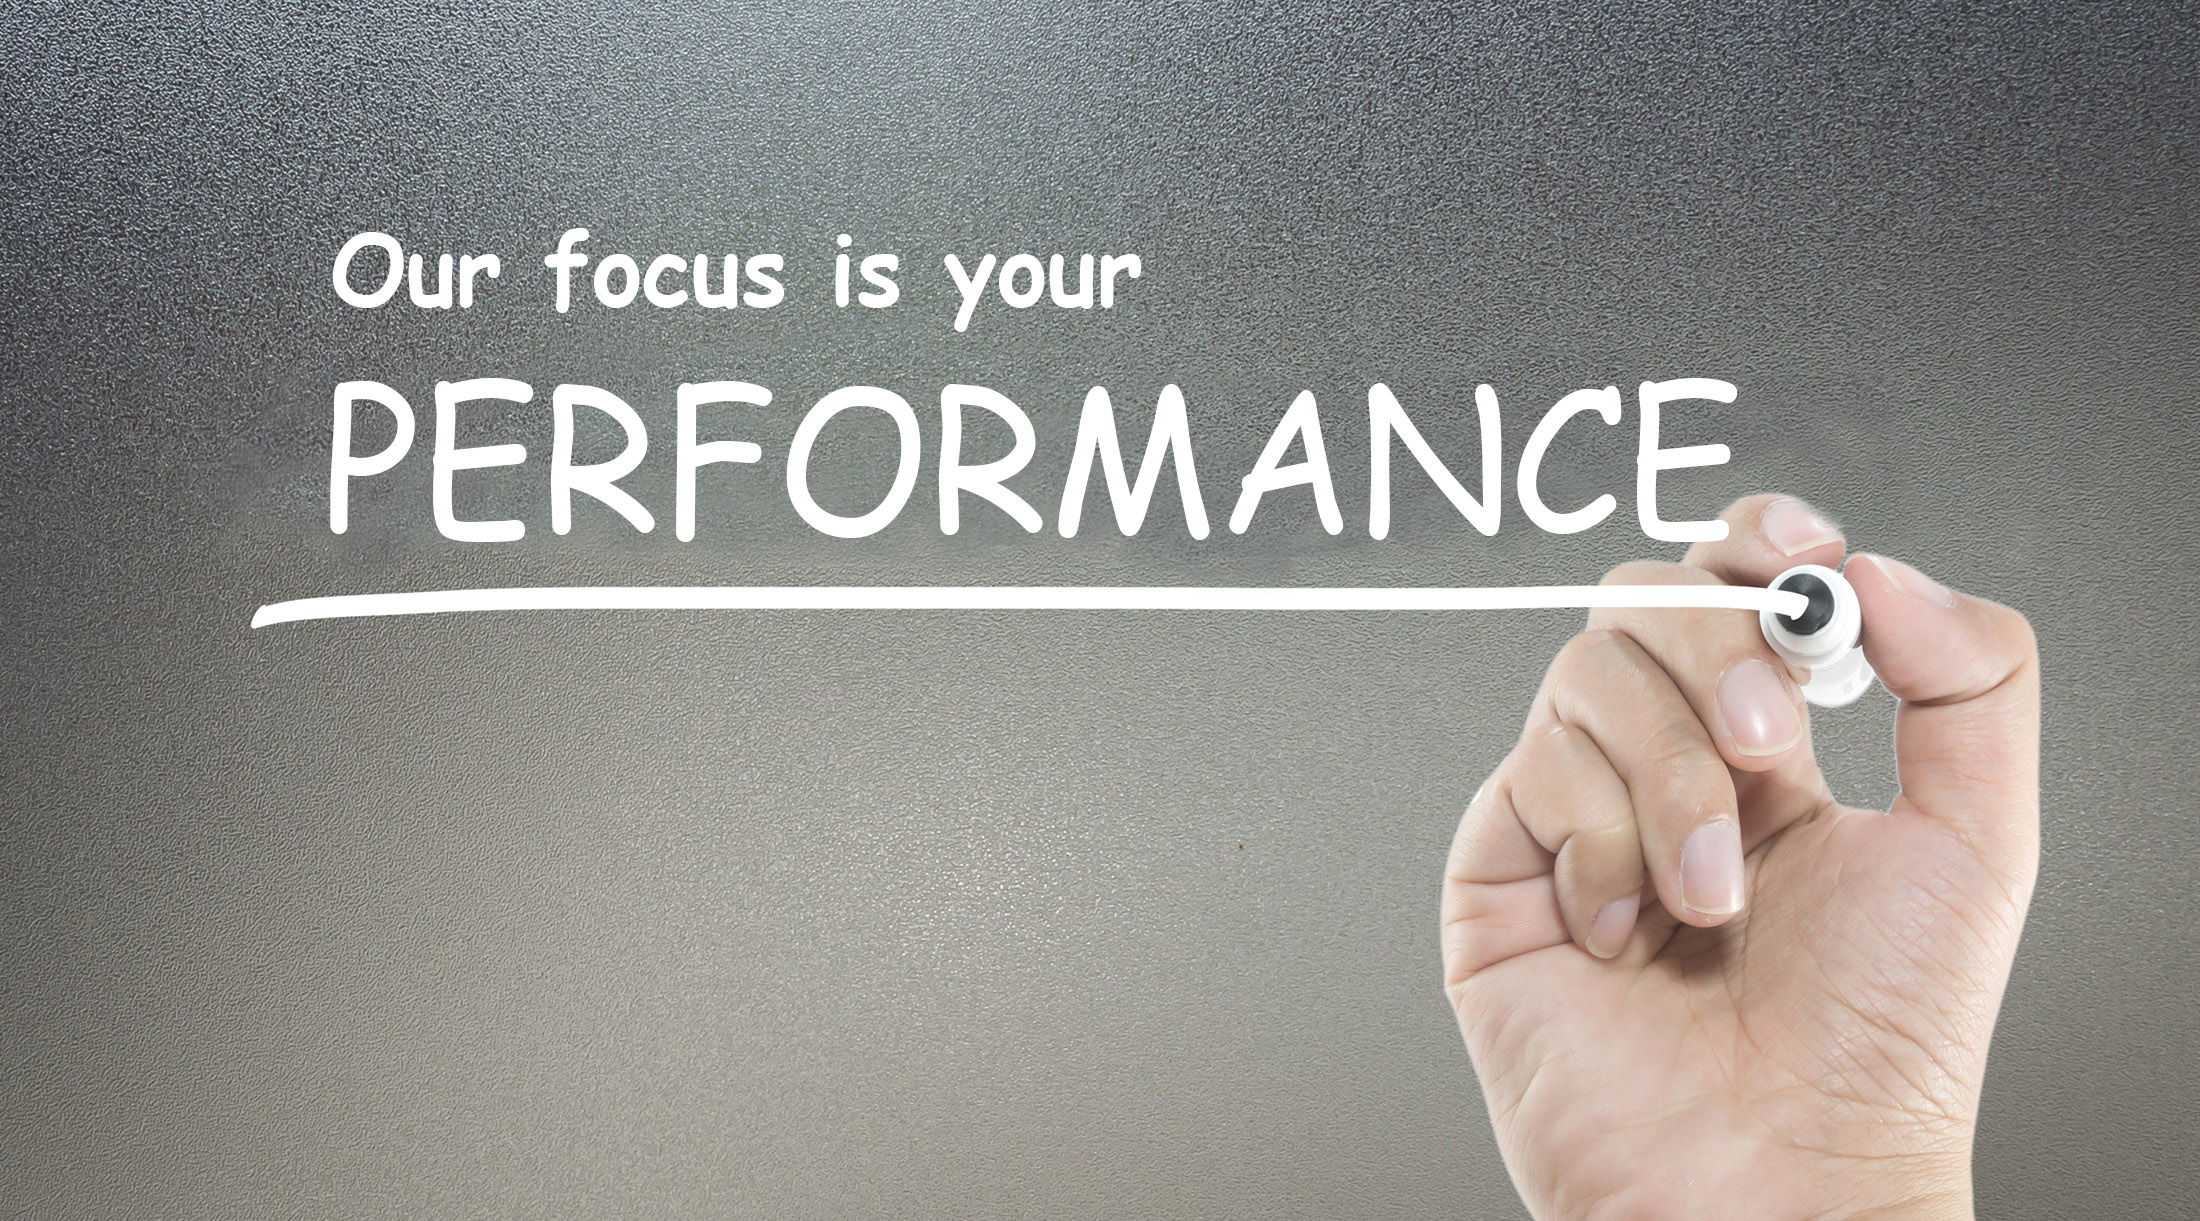 Our focus is your performance